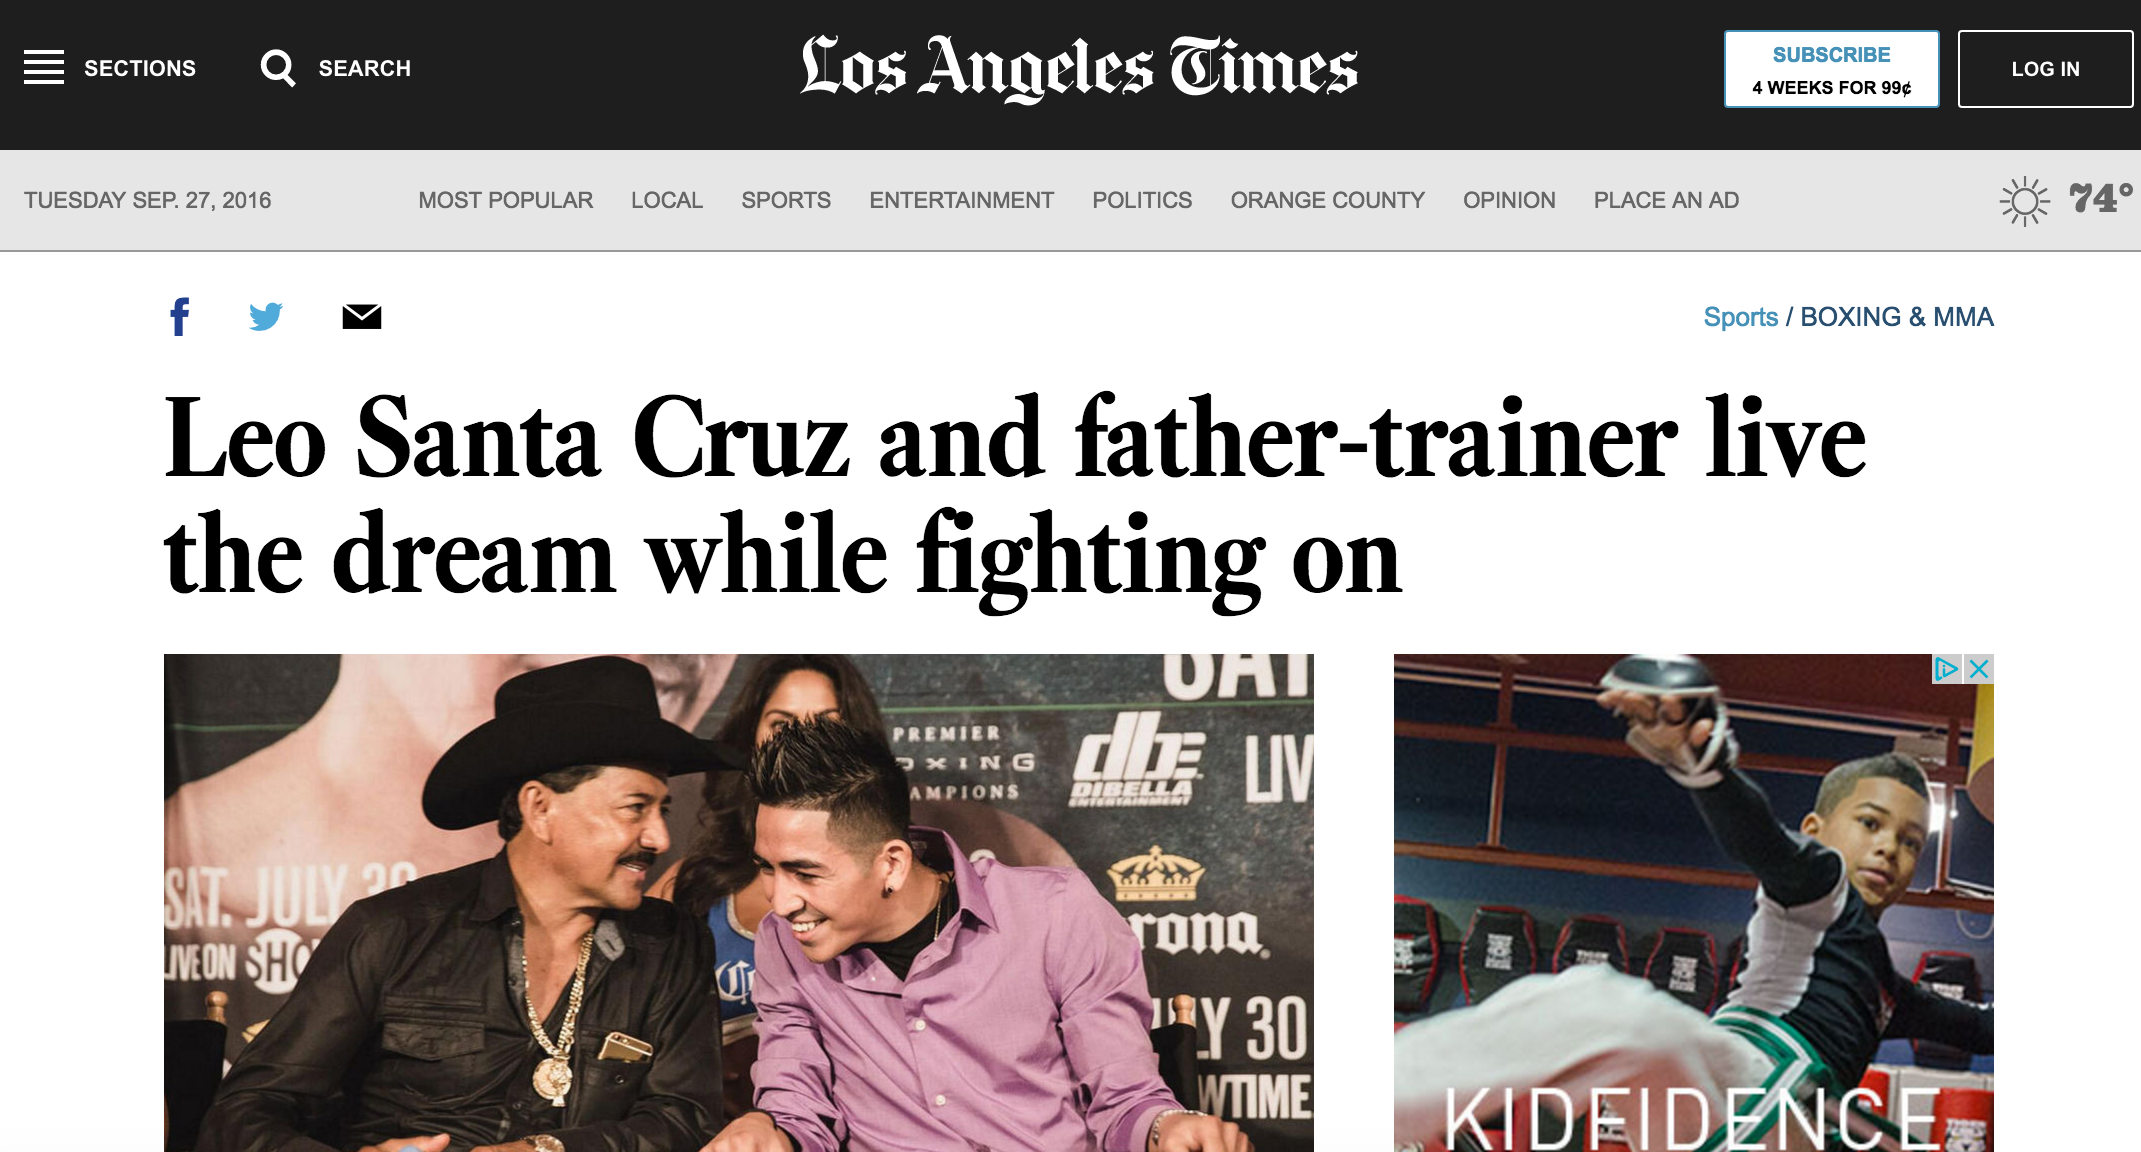 Leo Santa Cruz is featured in the la times ahead of his july 2016 fight against carl frampton about his father & trainer Jose's battle with cancer.